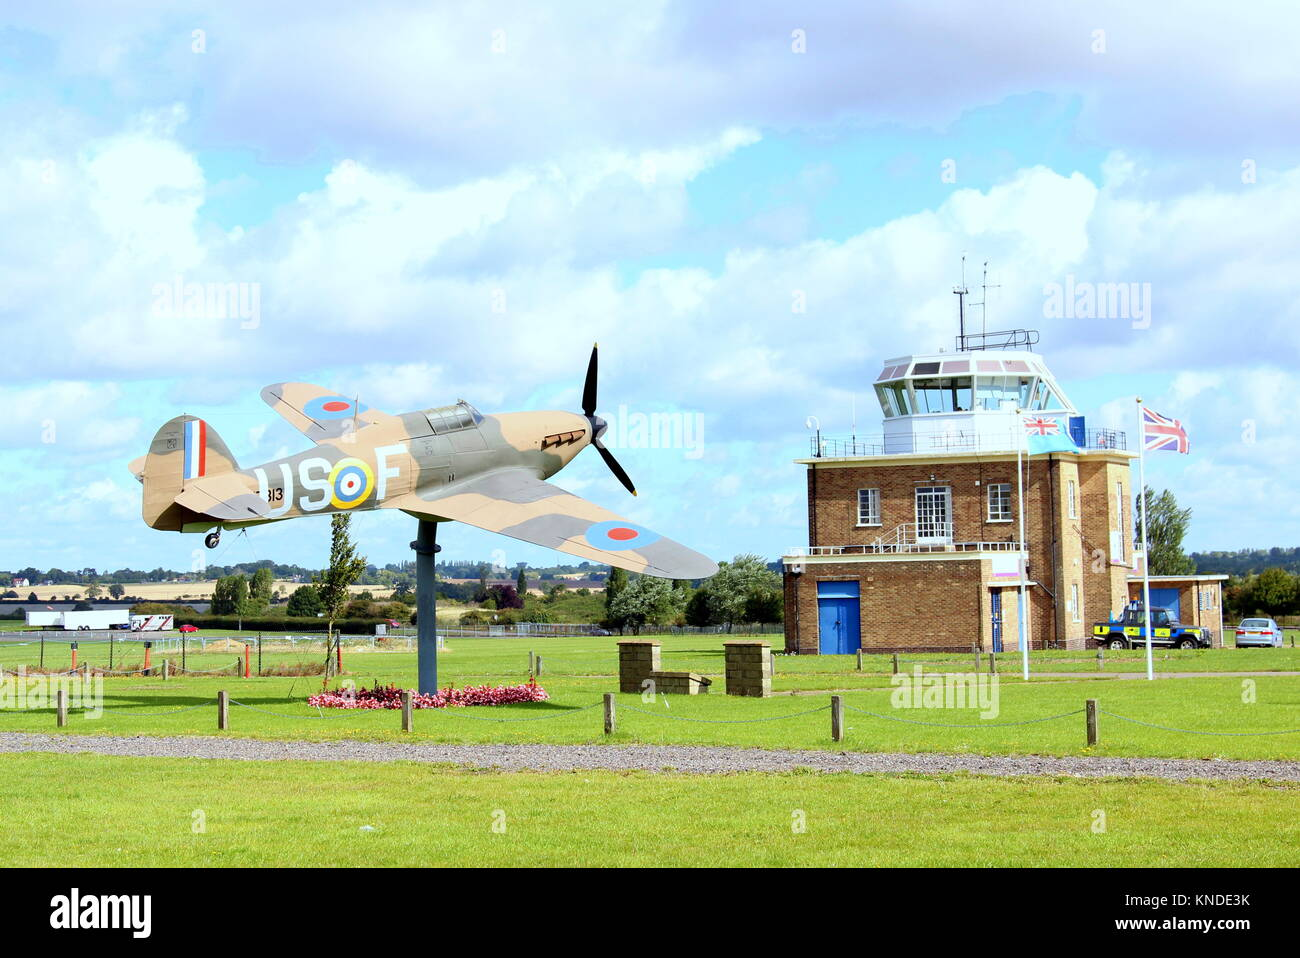 The control tower at North Weald aerodrome - Stock Image